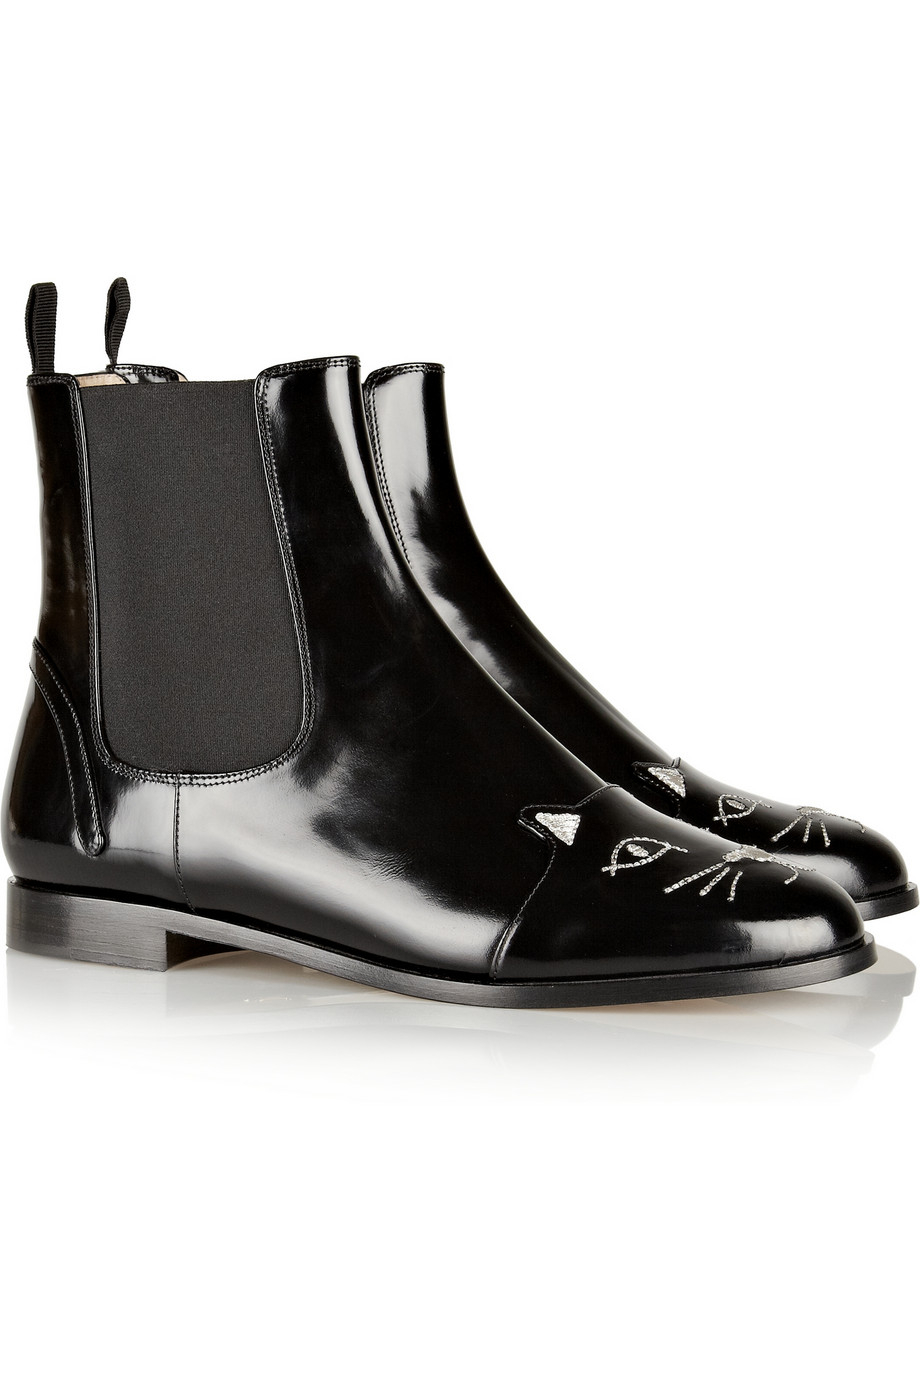 Charlotte Olympia Chelsea Cat Glossedleather Ankle Boots in Black